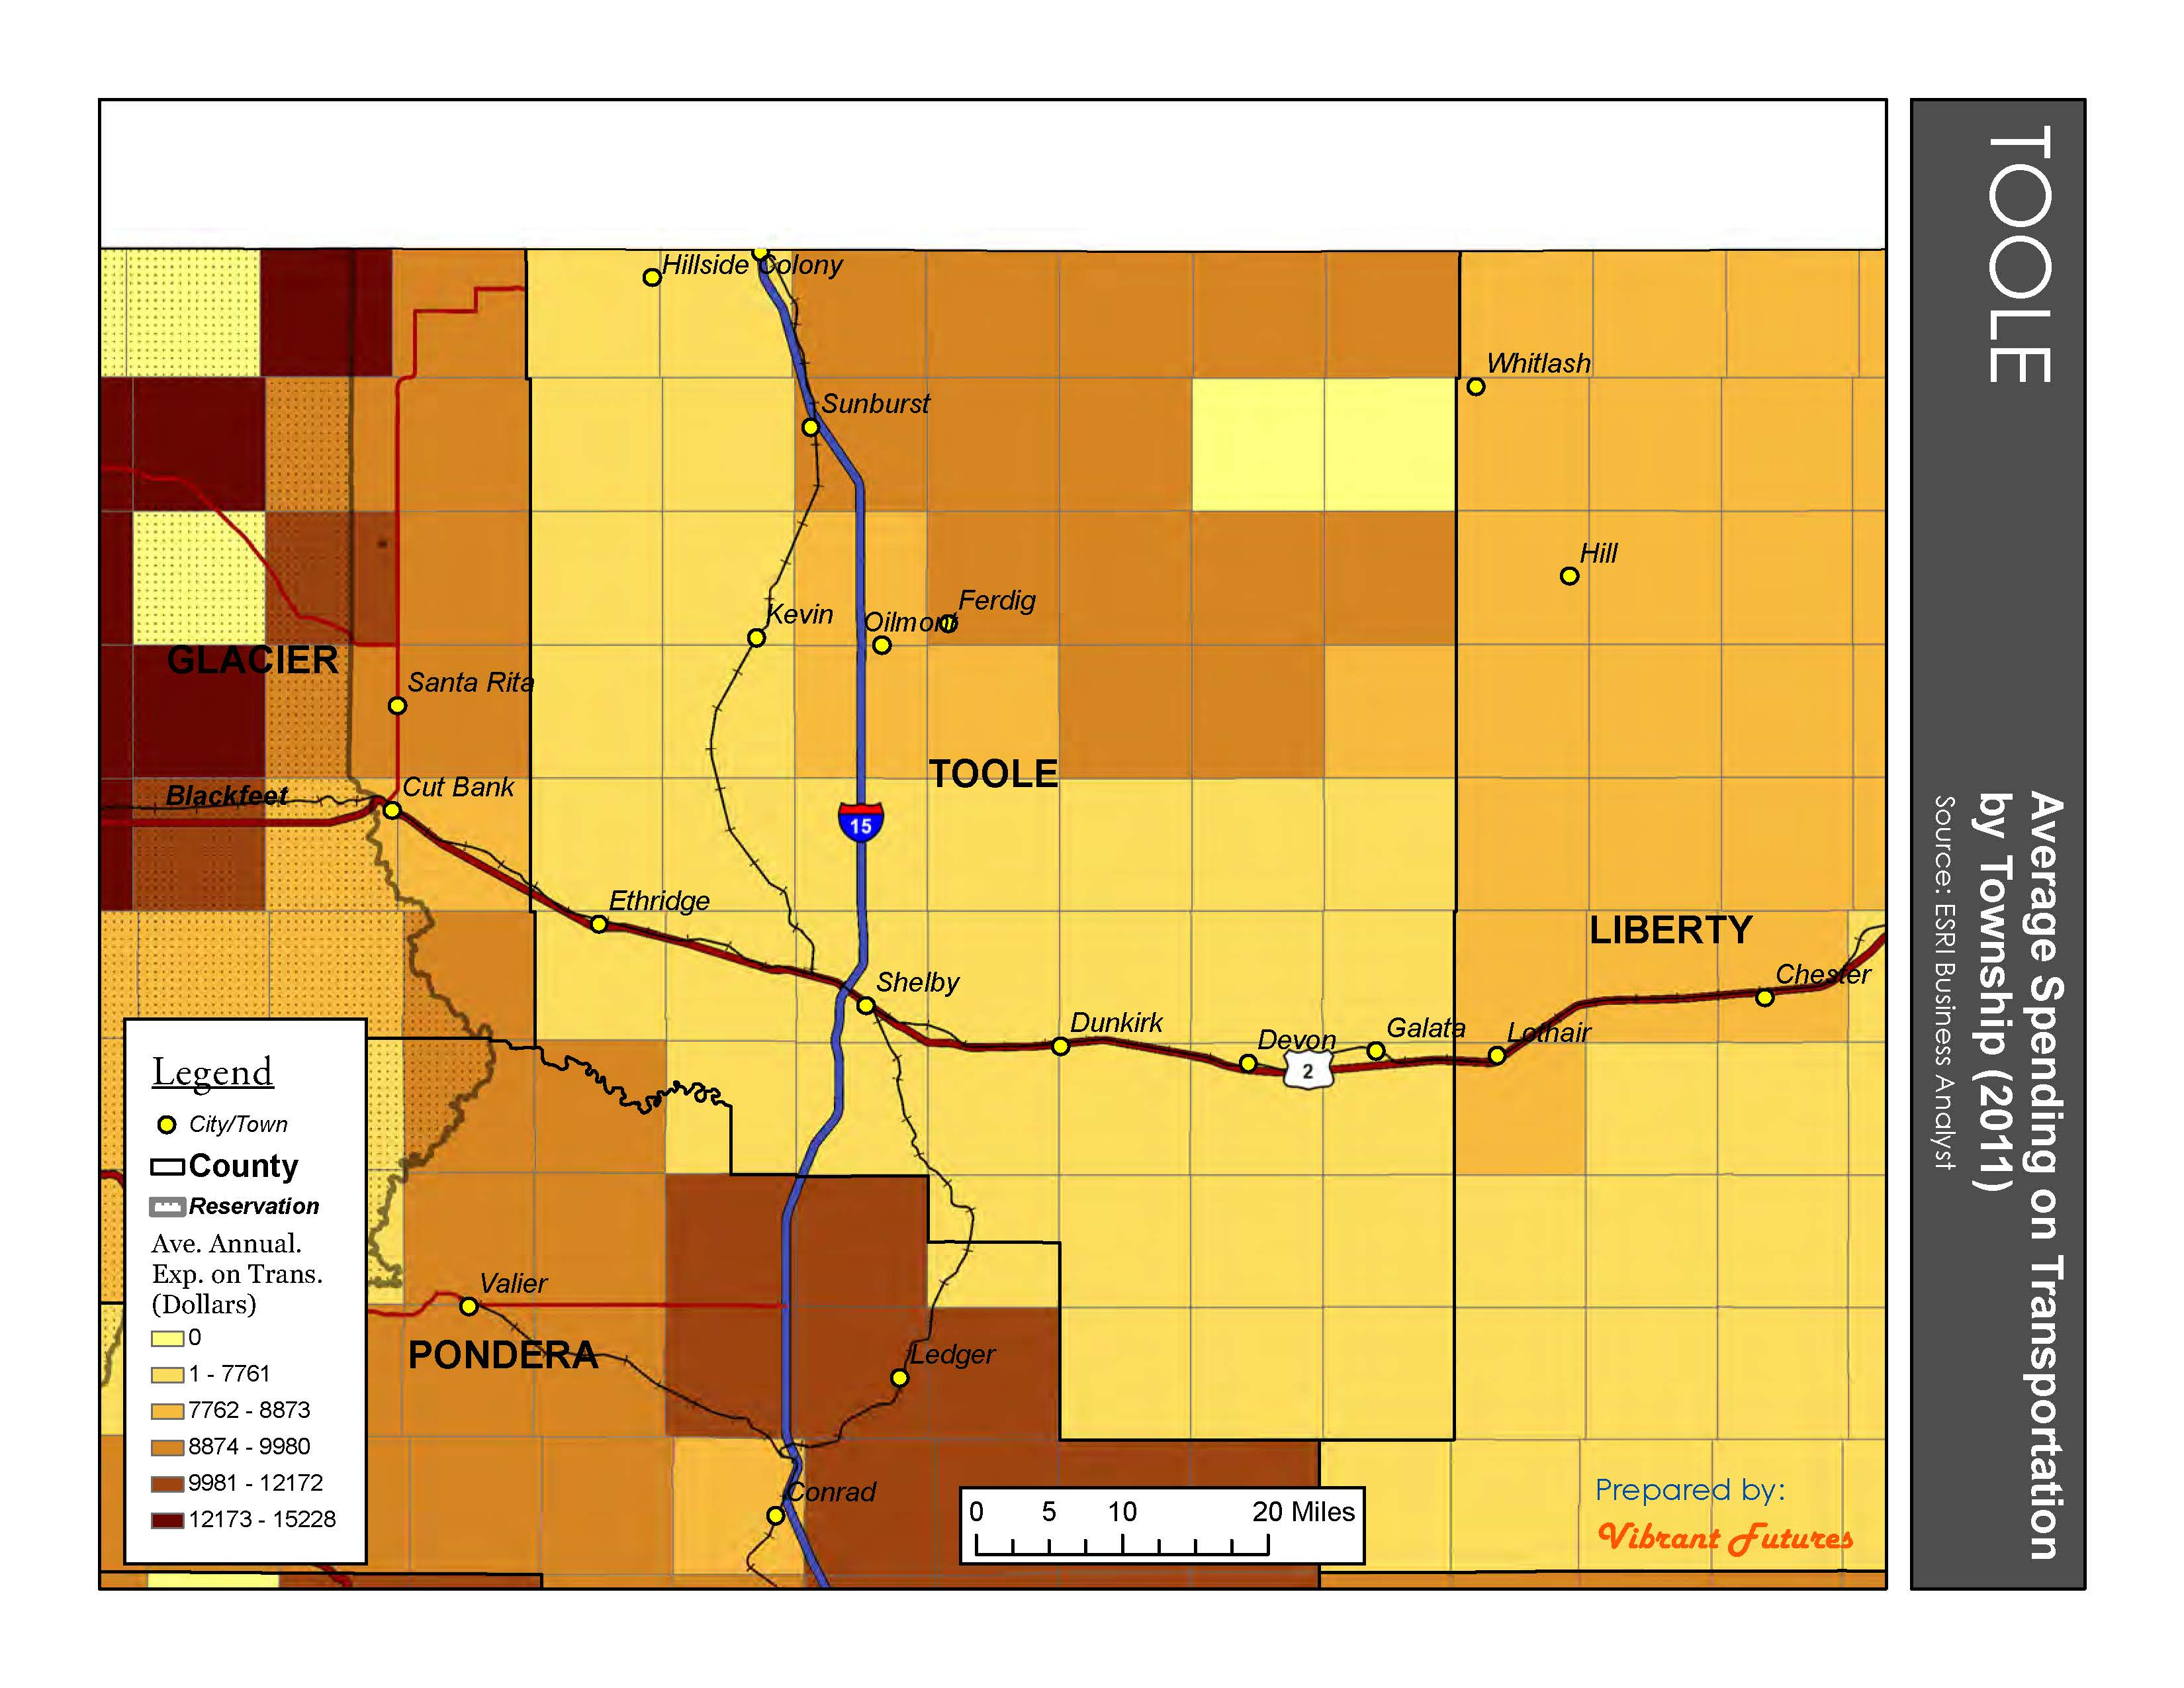 Average Expenditure on Transportation Toole County